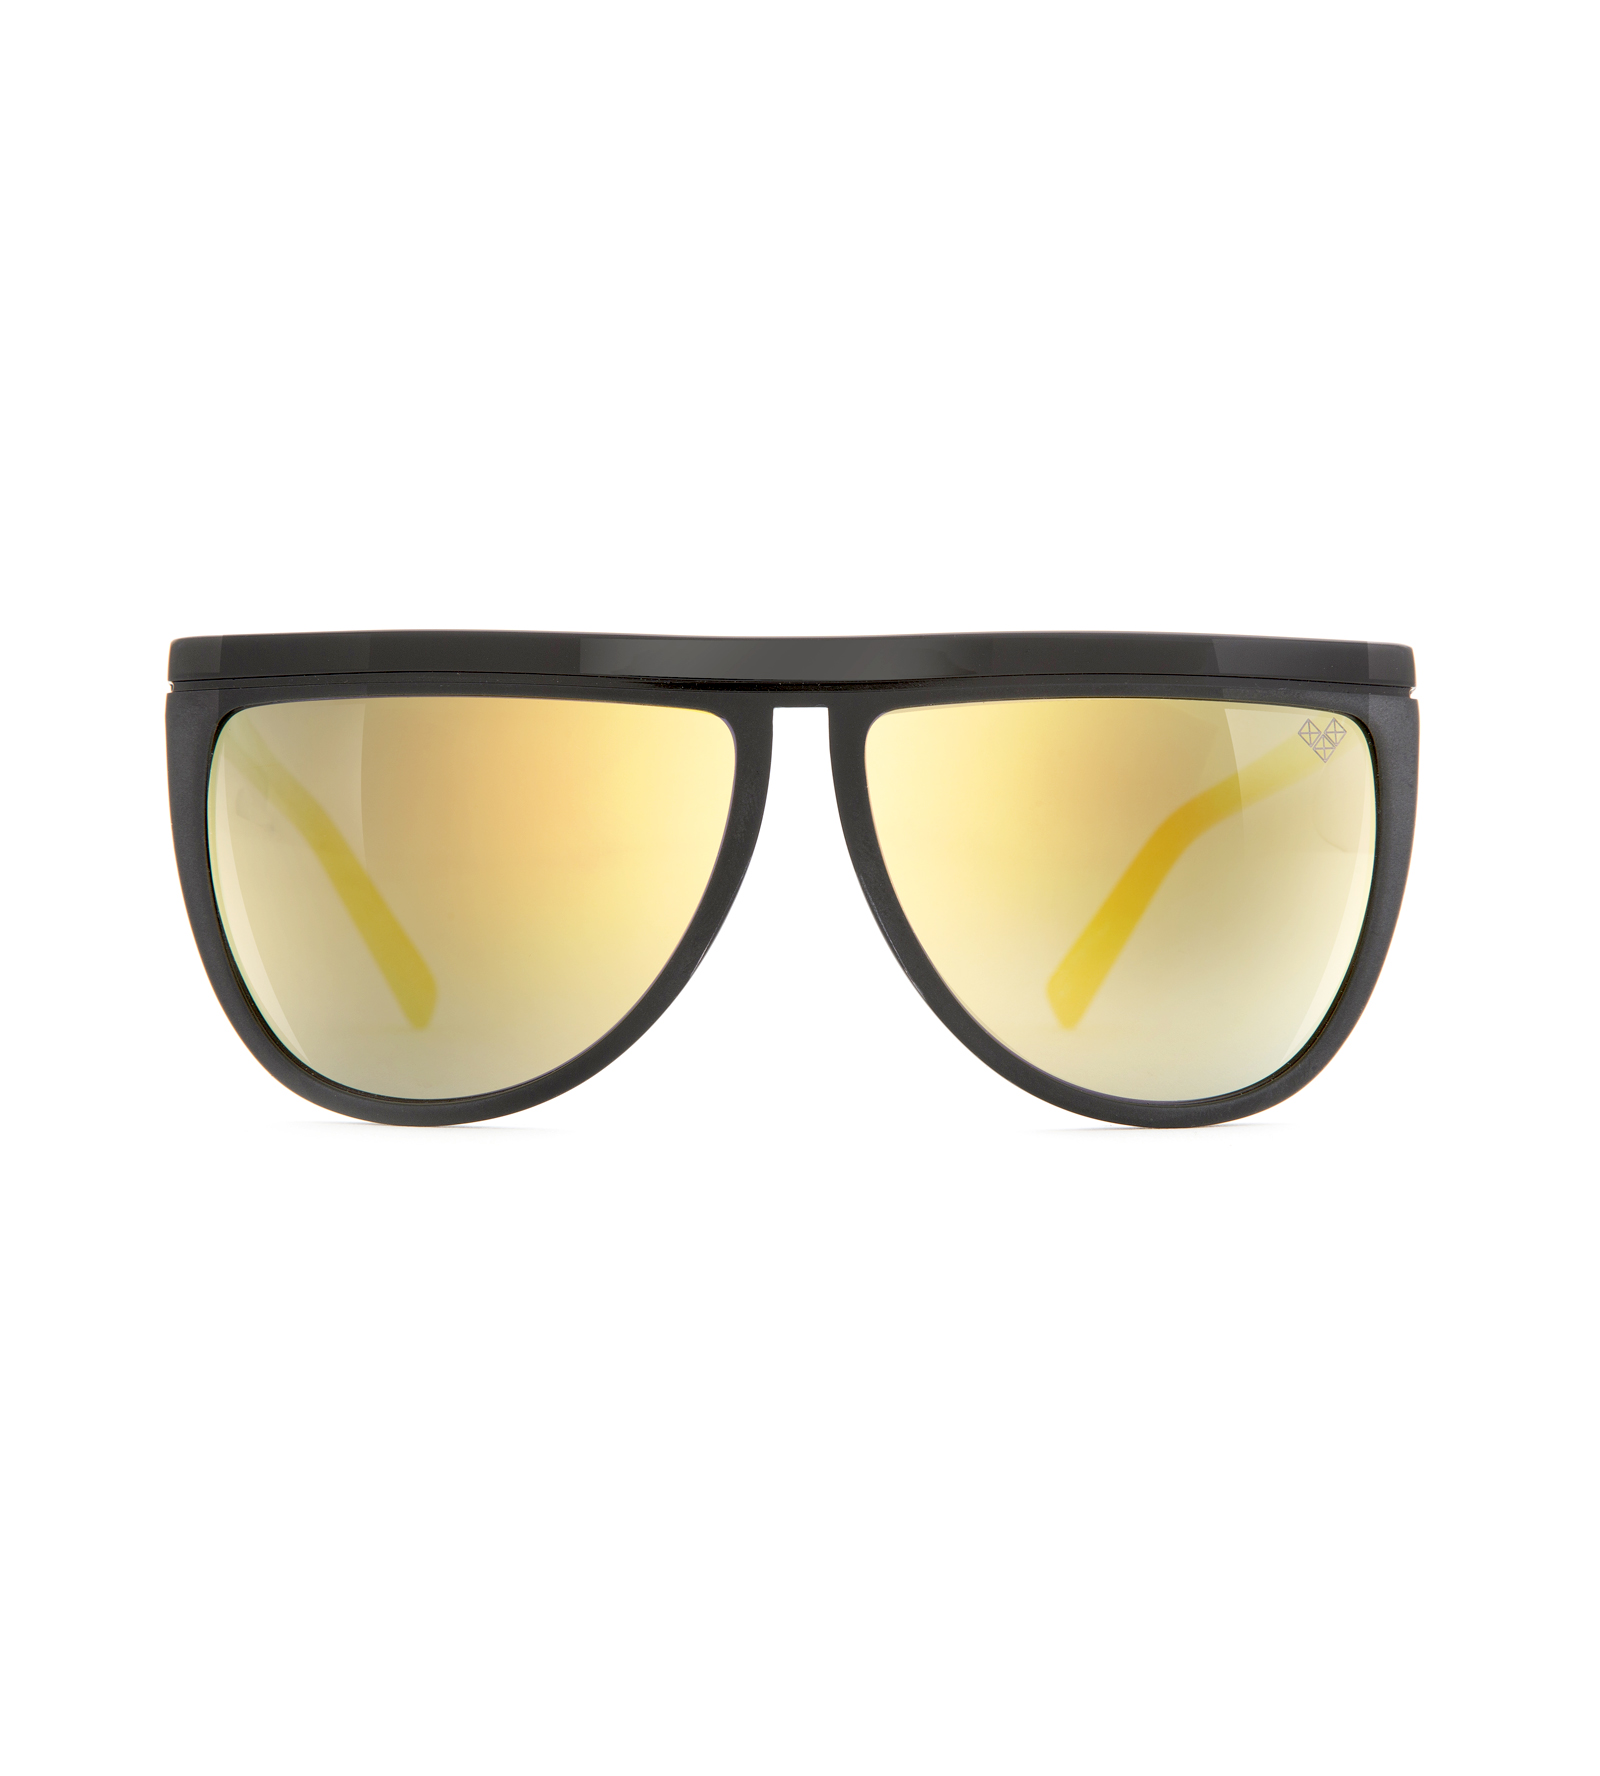 OMIKU-Om9G with Gold Mirror Coating Lenses